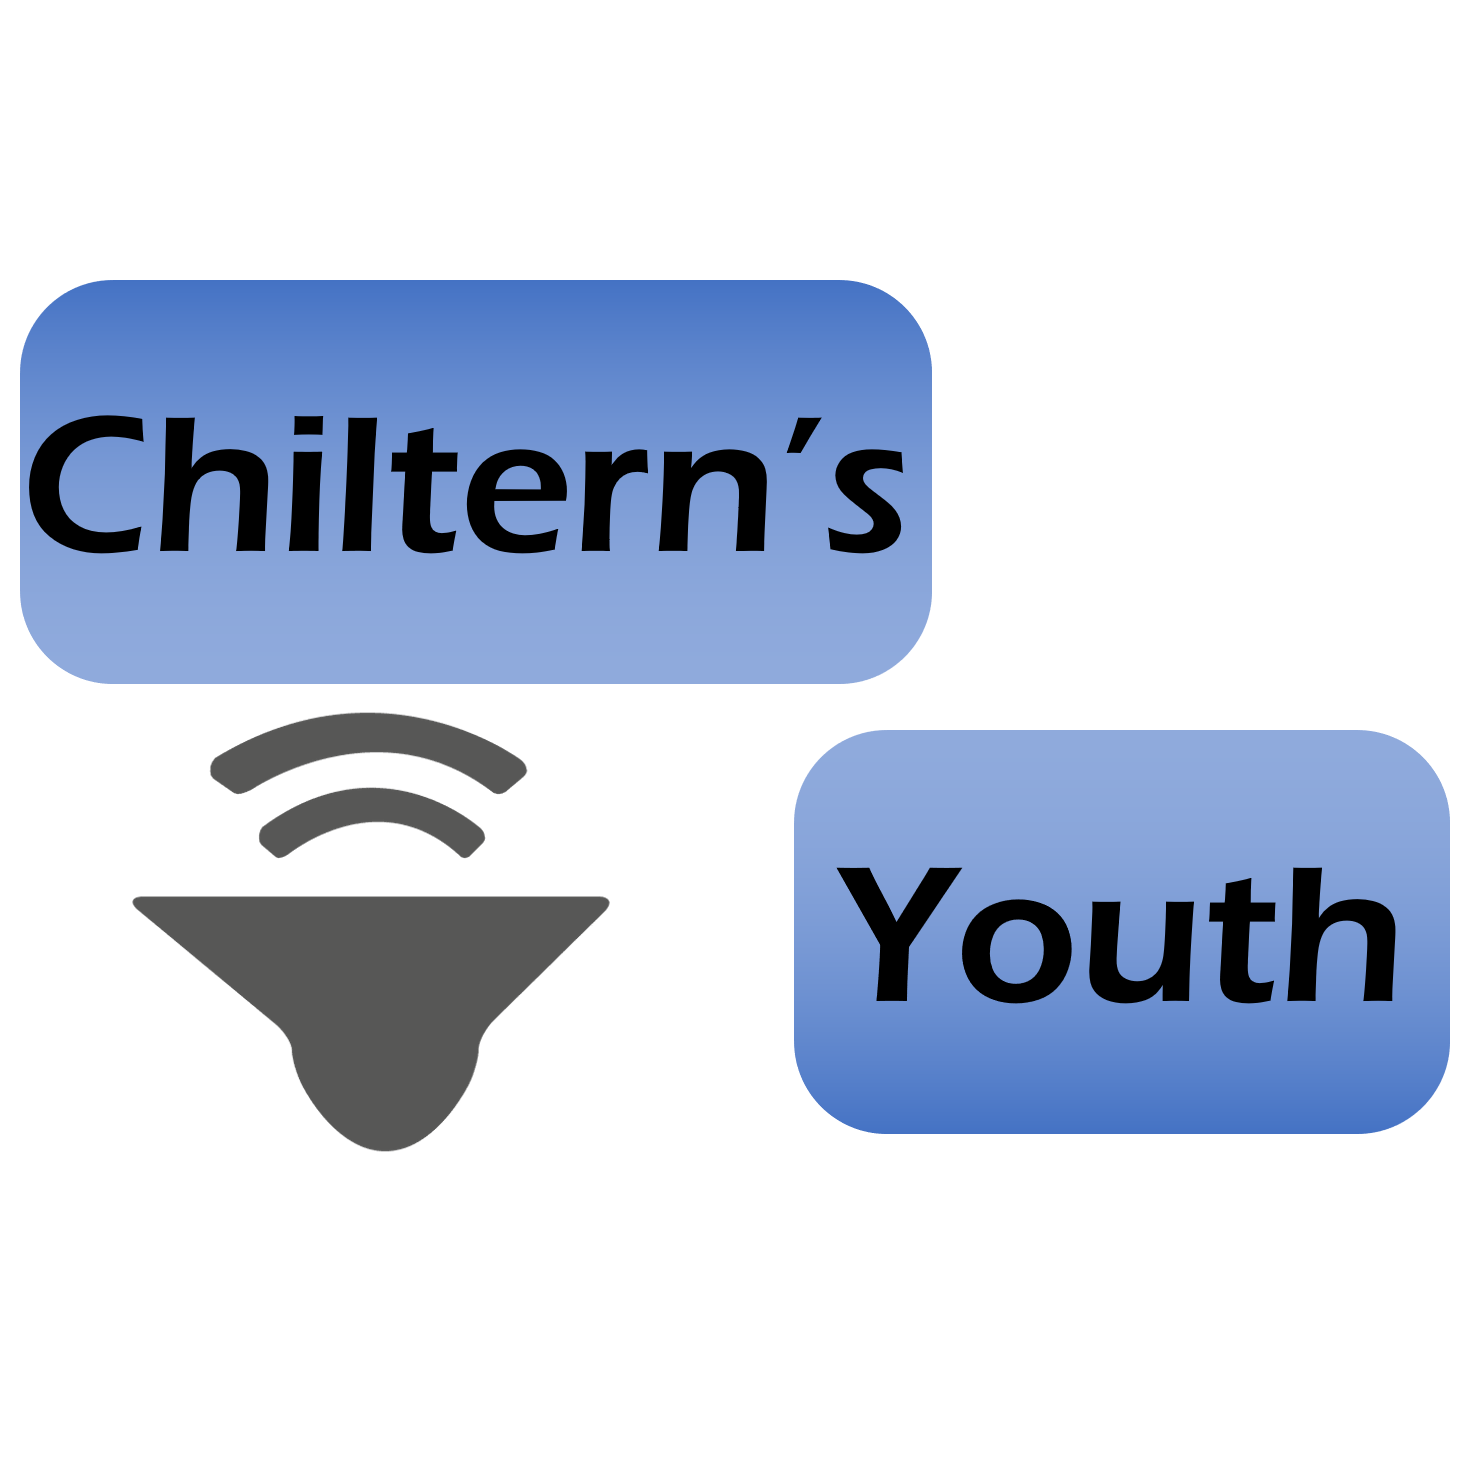 Chiltern's Youth